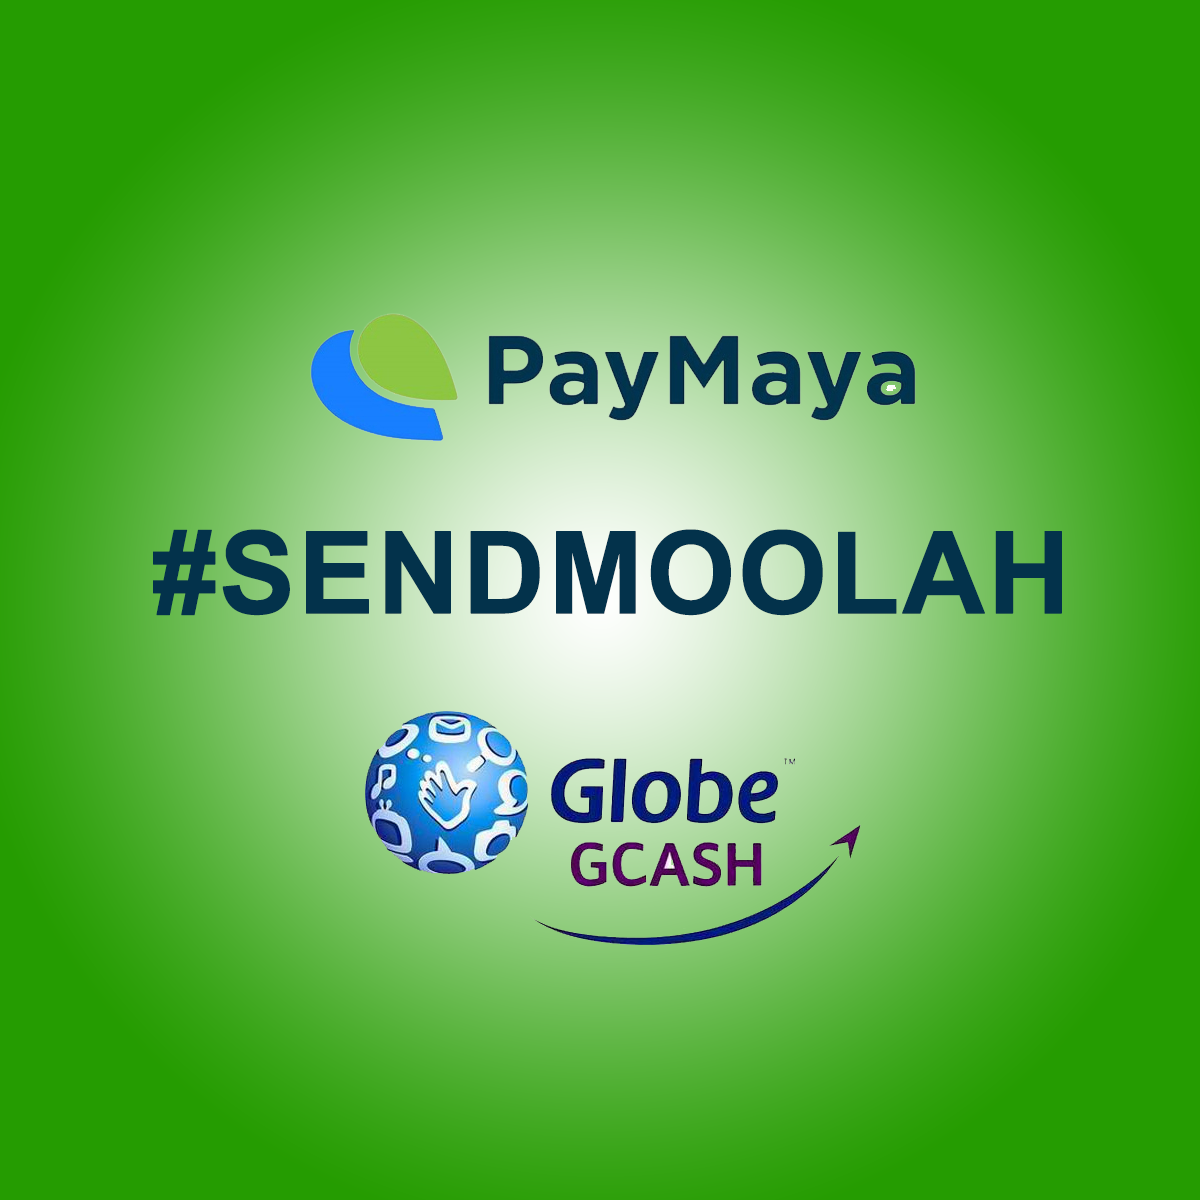 PayMaya Makes Money Services More Accessible to Filipinos, Announces Interoperability with GCash